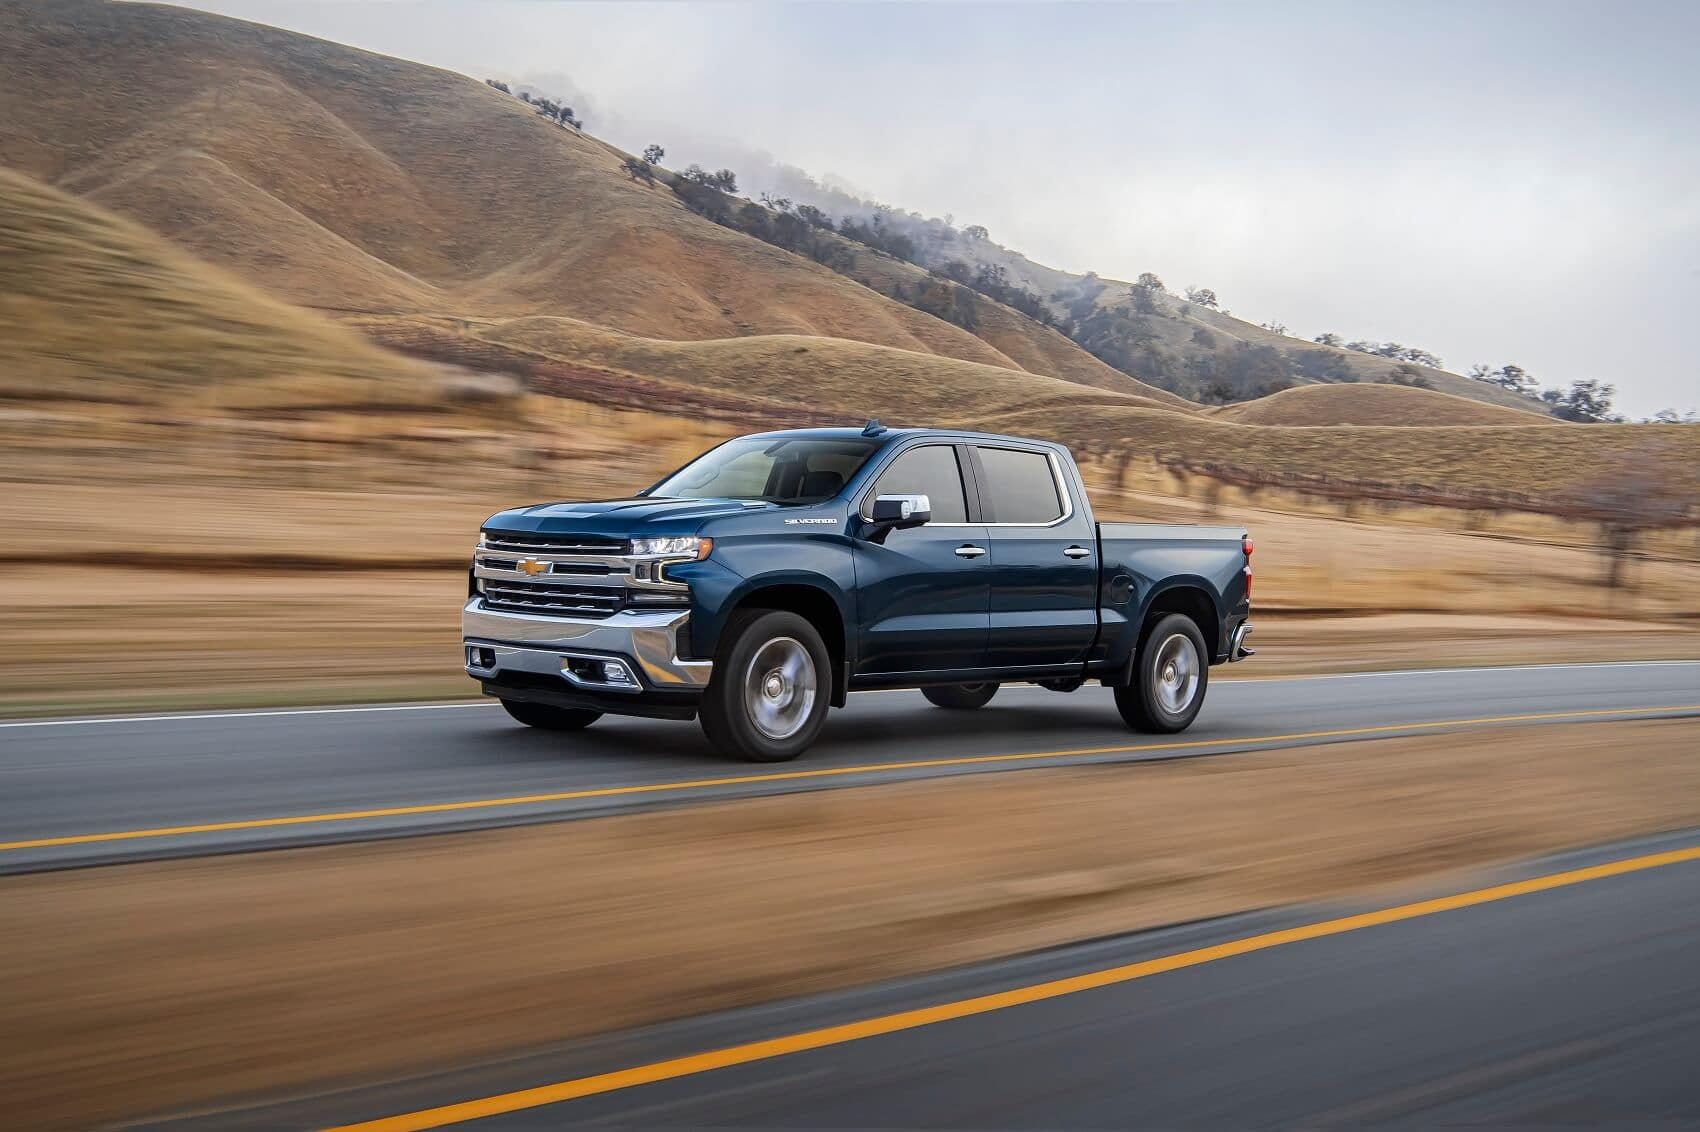 2020 Chevrolet Silverado 1500 Engine Specs